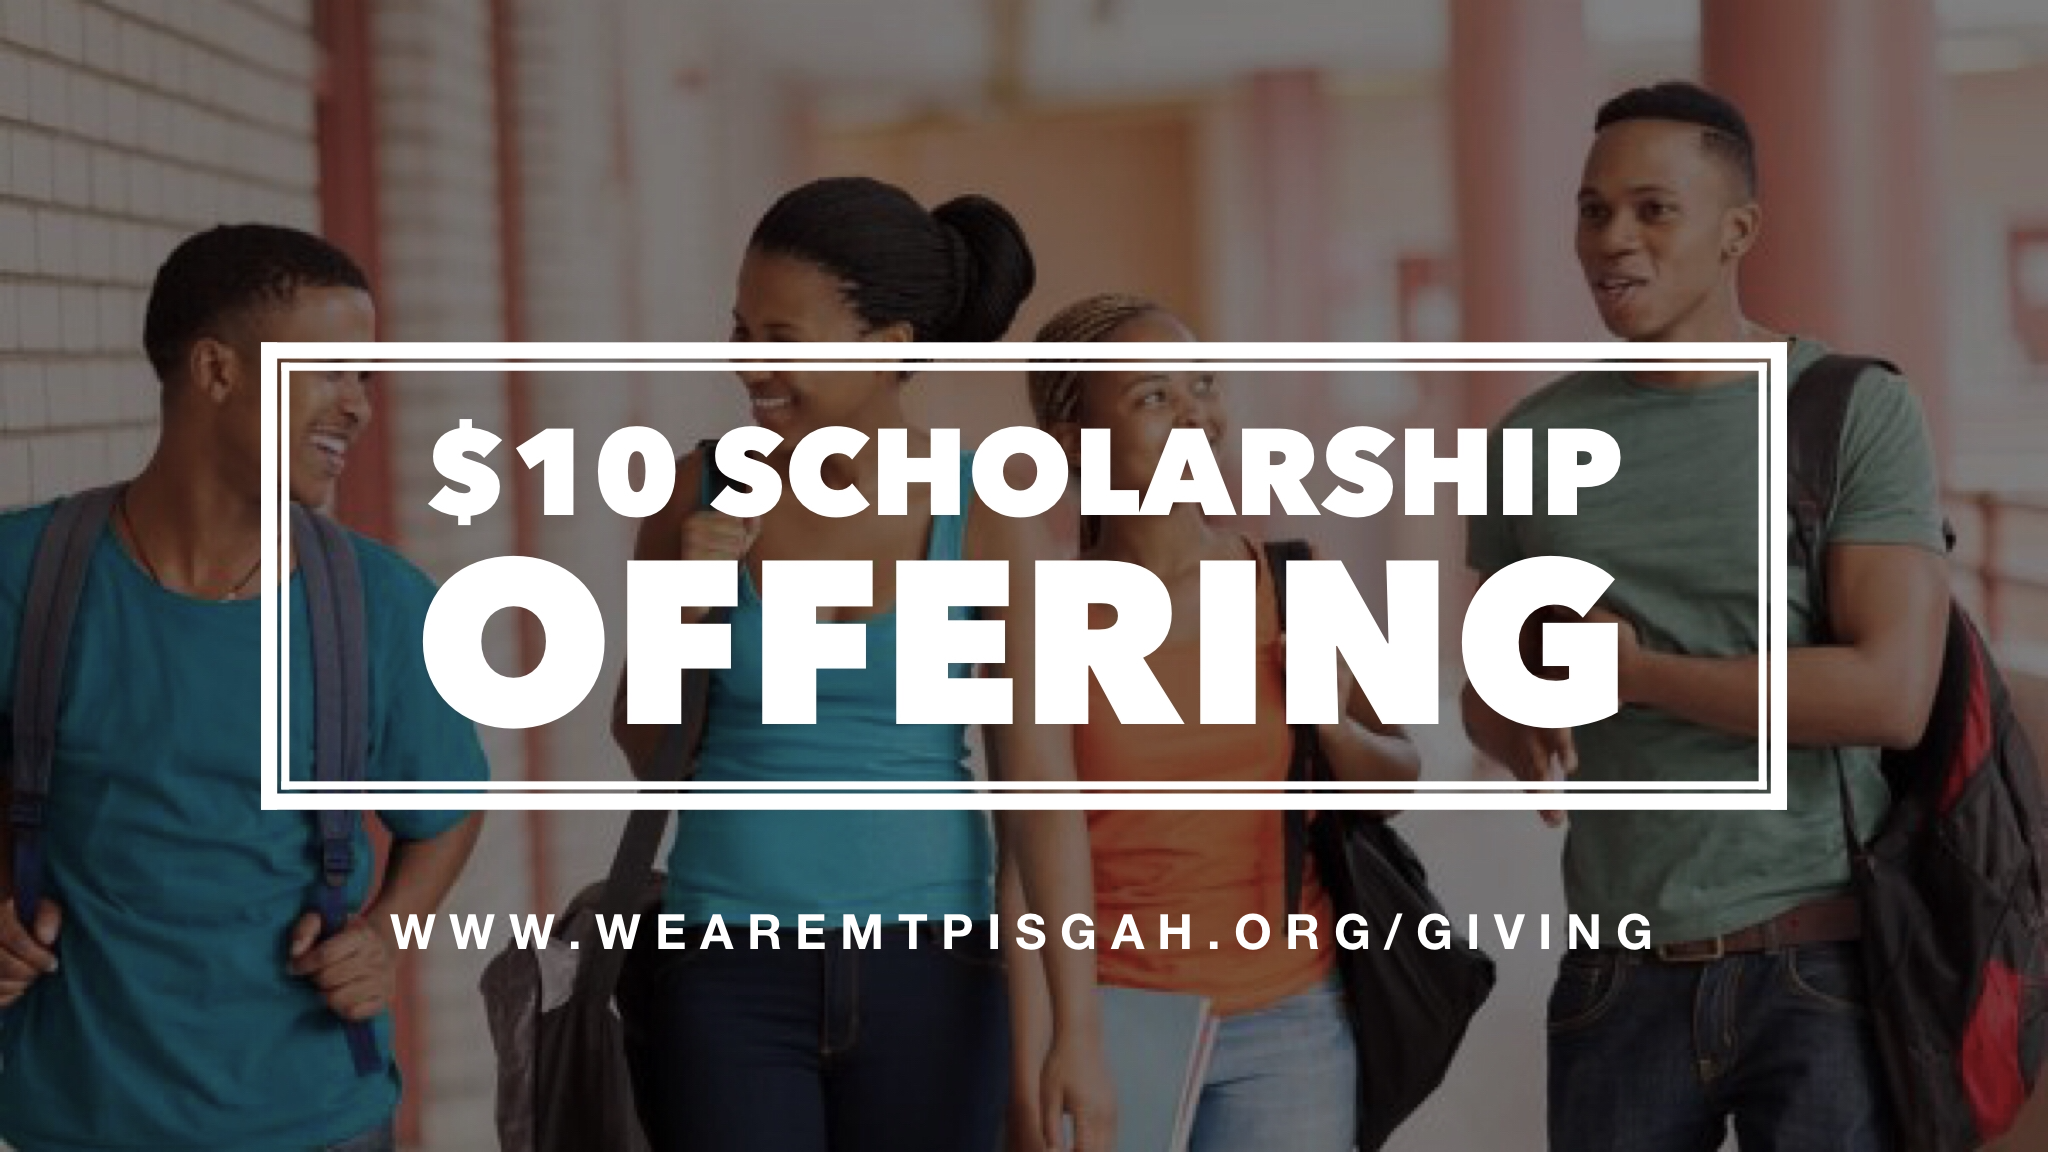 Make an IMPACT with College Students! - Sunday, September 15, 2019 is our Scholarship Ministry Annual Day. We are asking all members to bring a special offering of $10, and then commit to sowing a seed of at least $10 every month as we seek to bless our students in college. You can give at the church or online via Givelify.